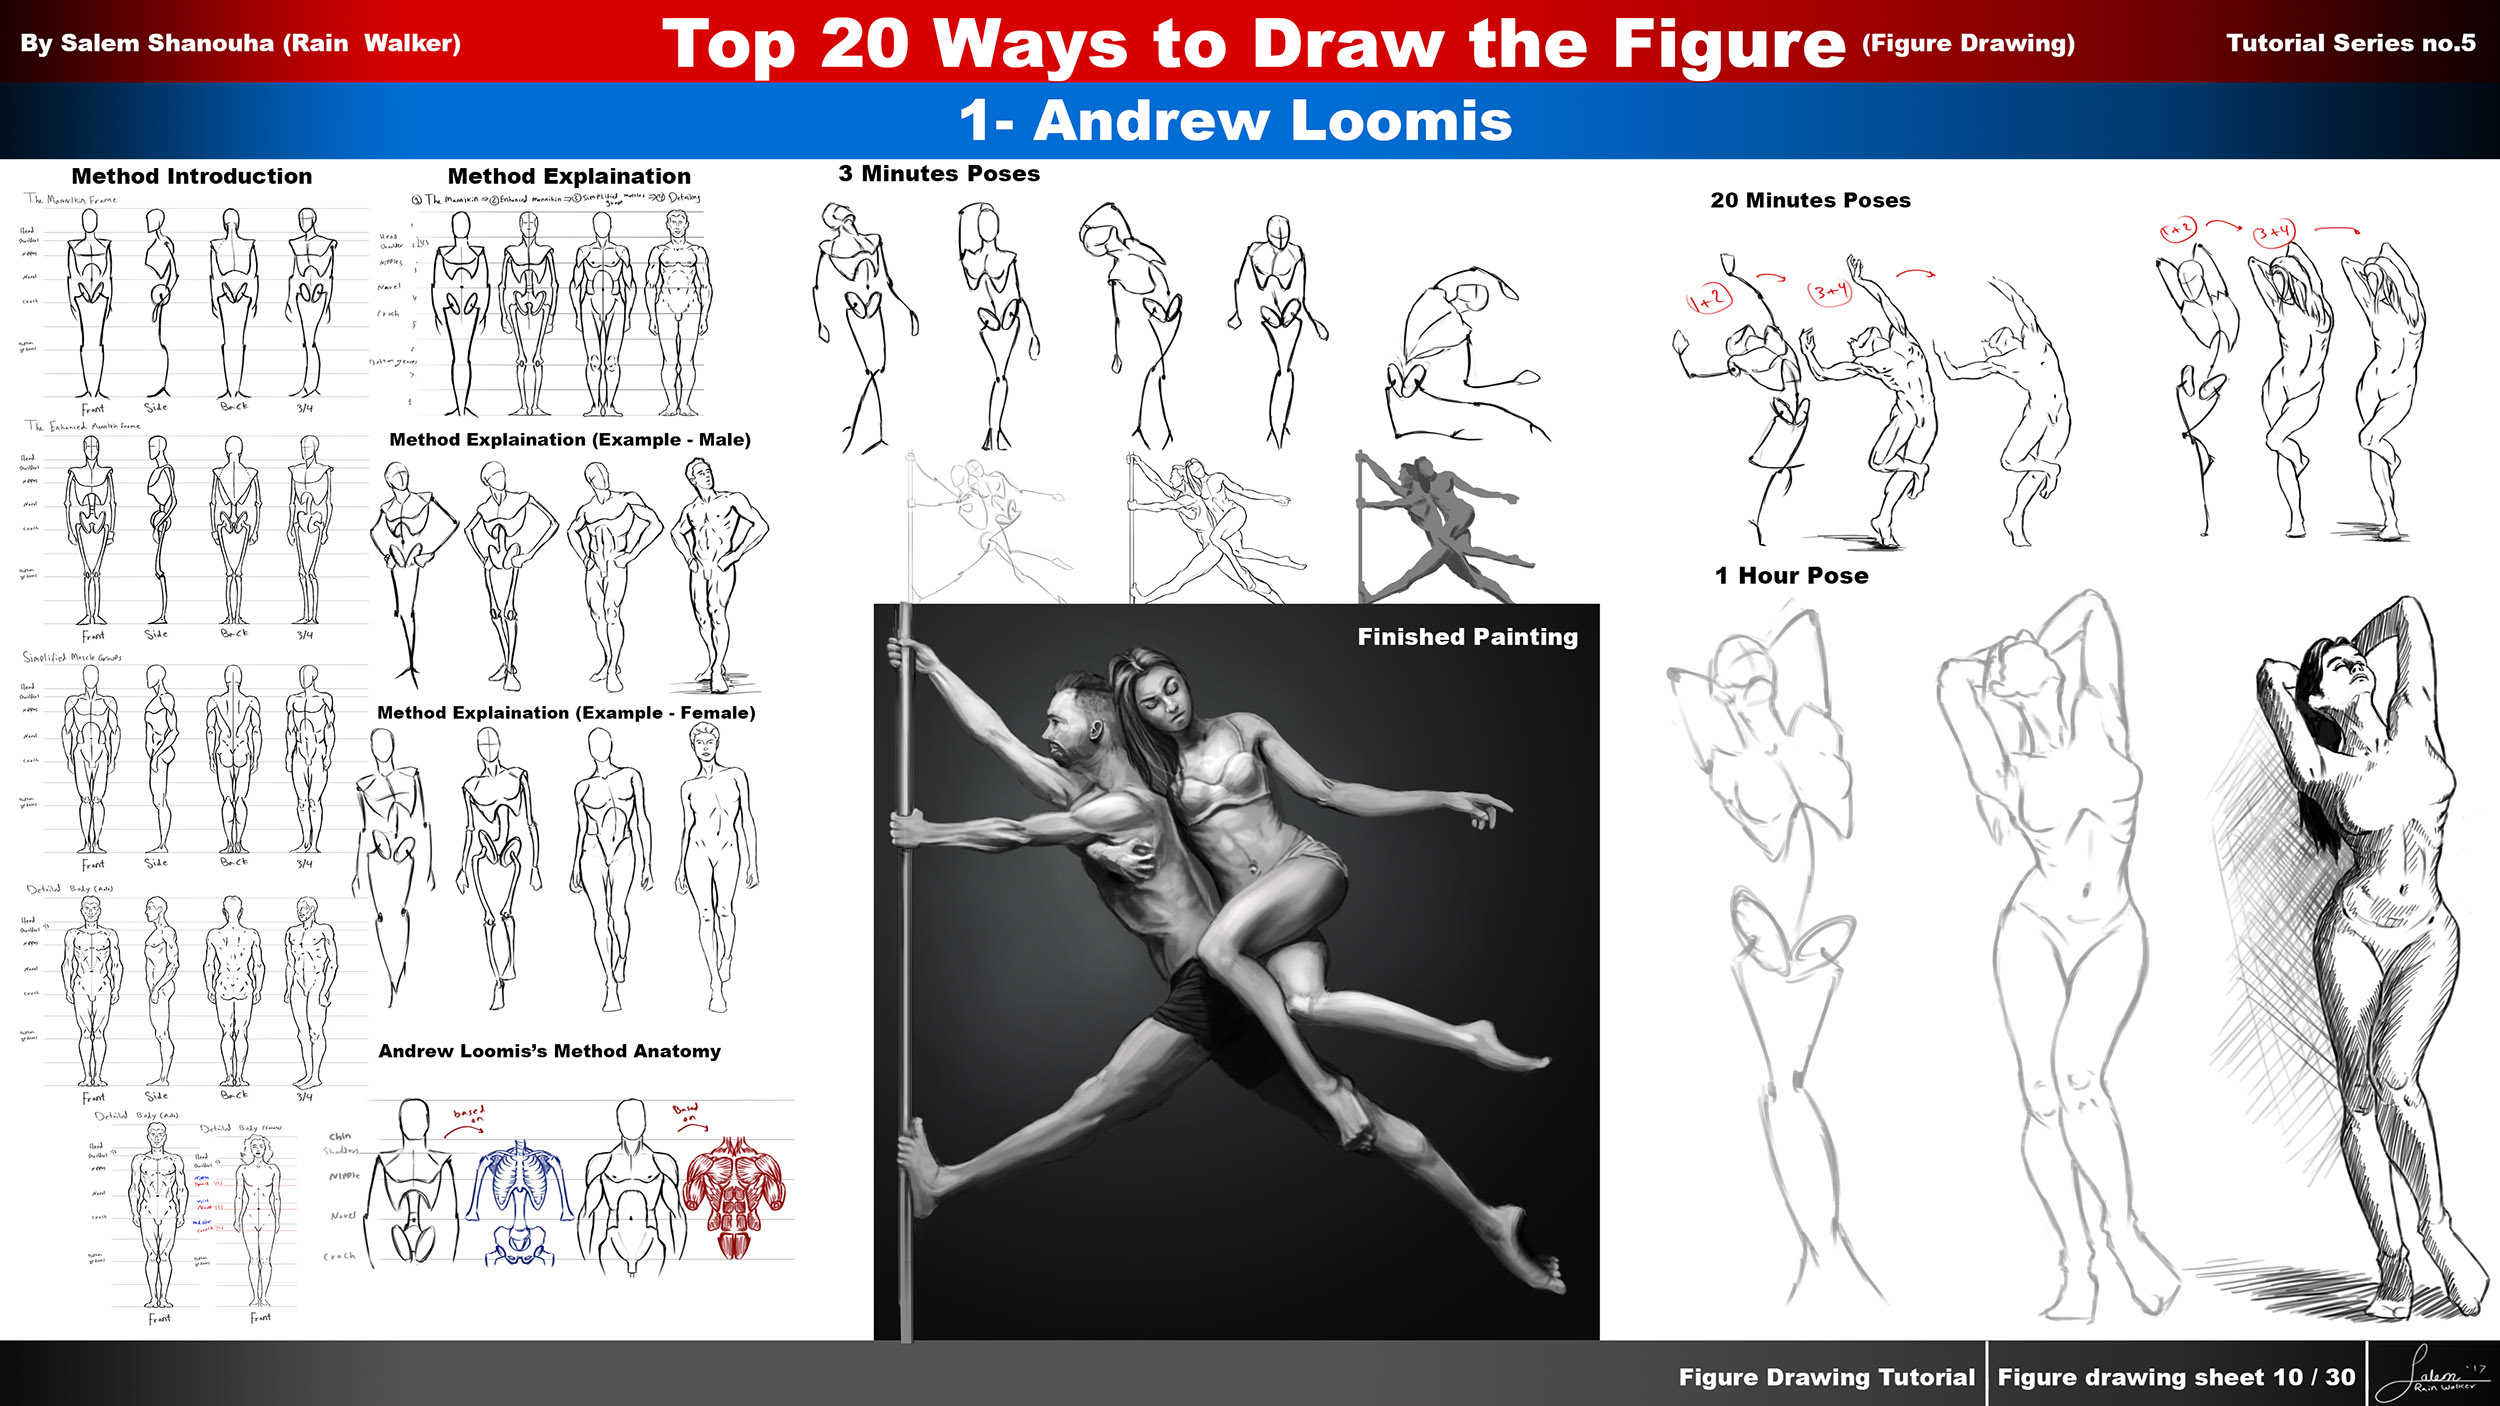 Top 20 Ways to Draw the Figure Tutorial Series (Ch.1 Andrew Loomis Method)